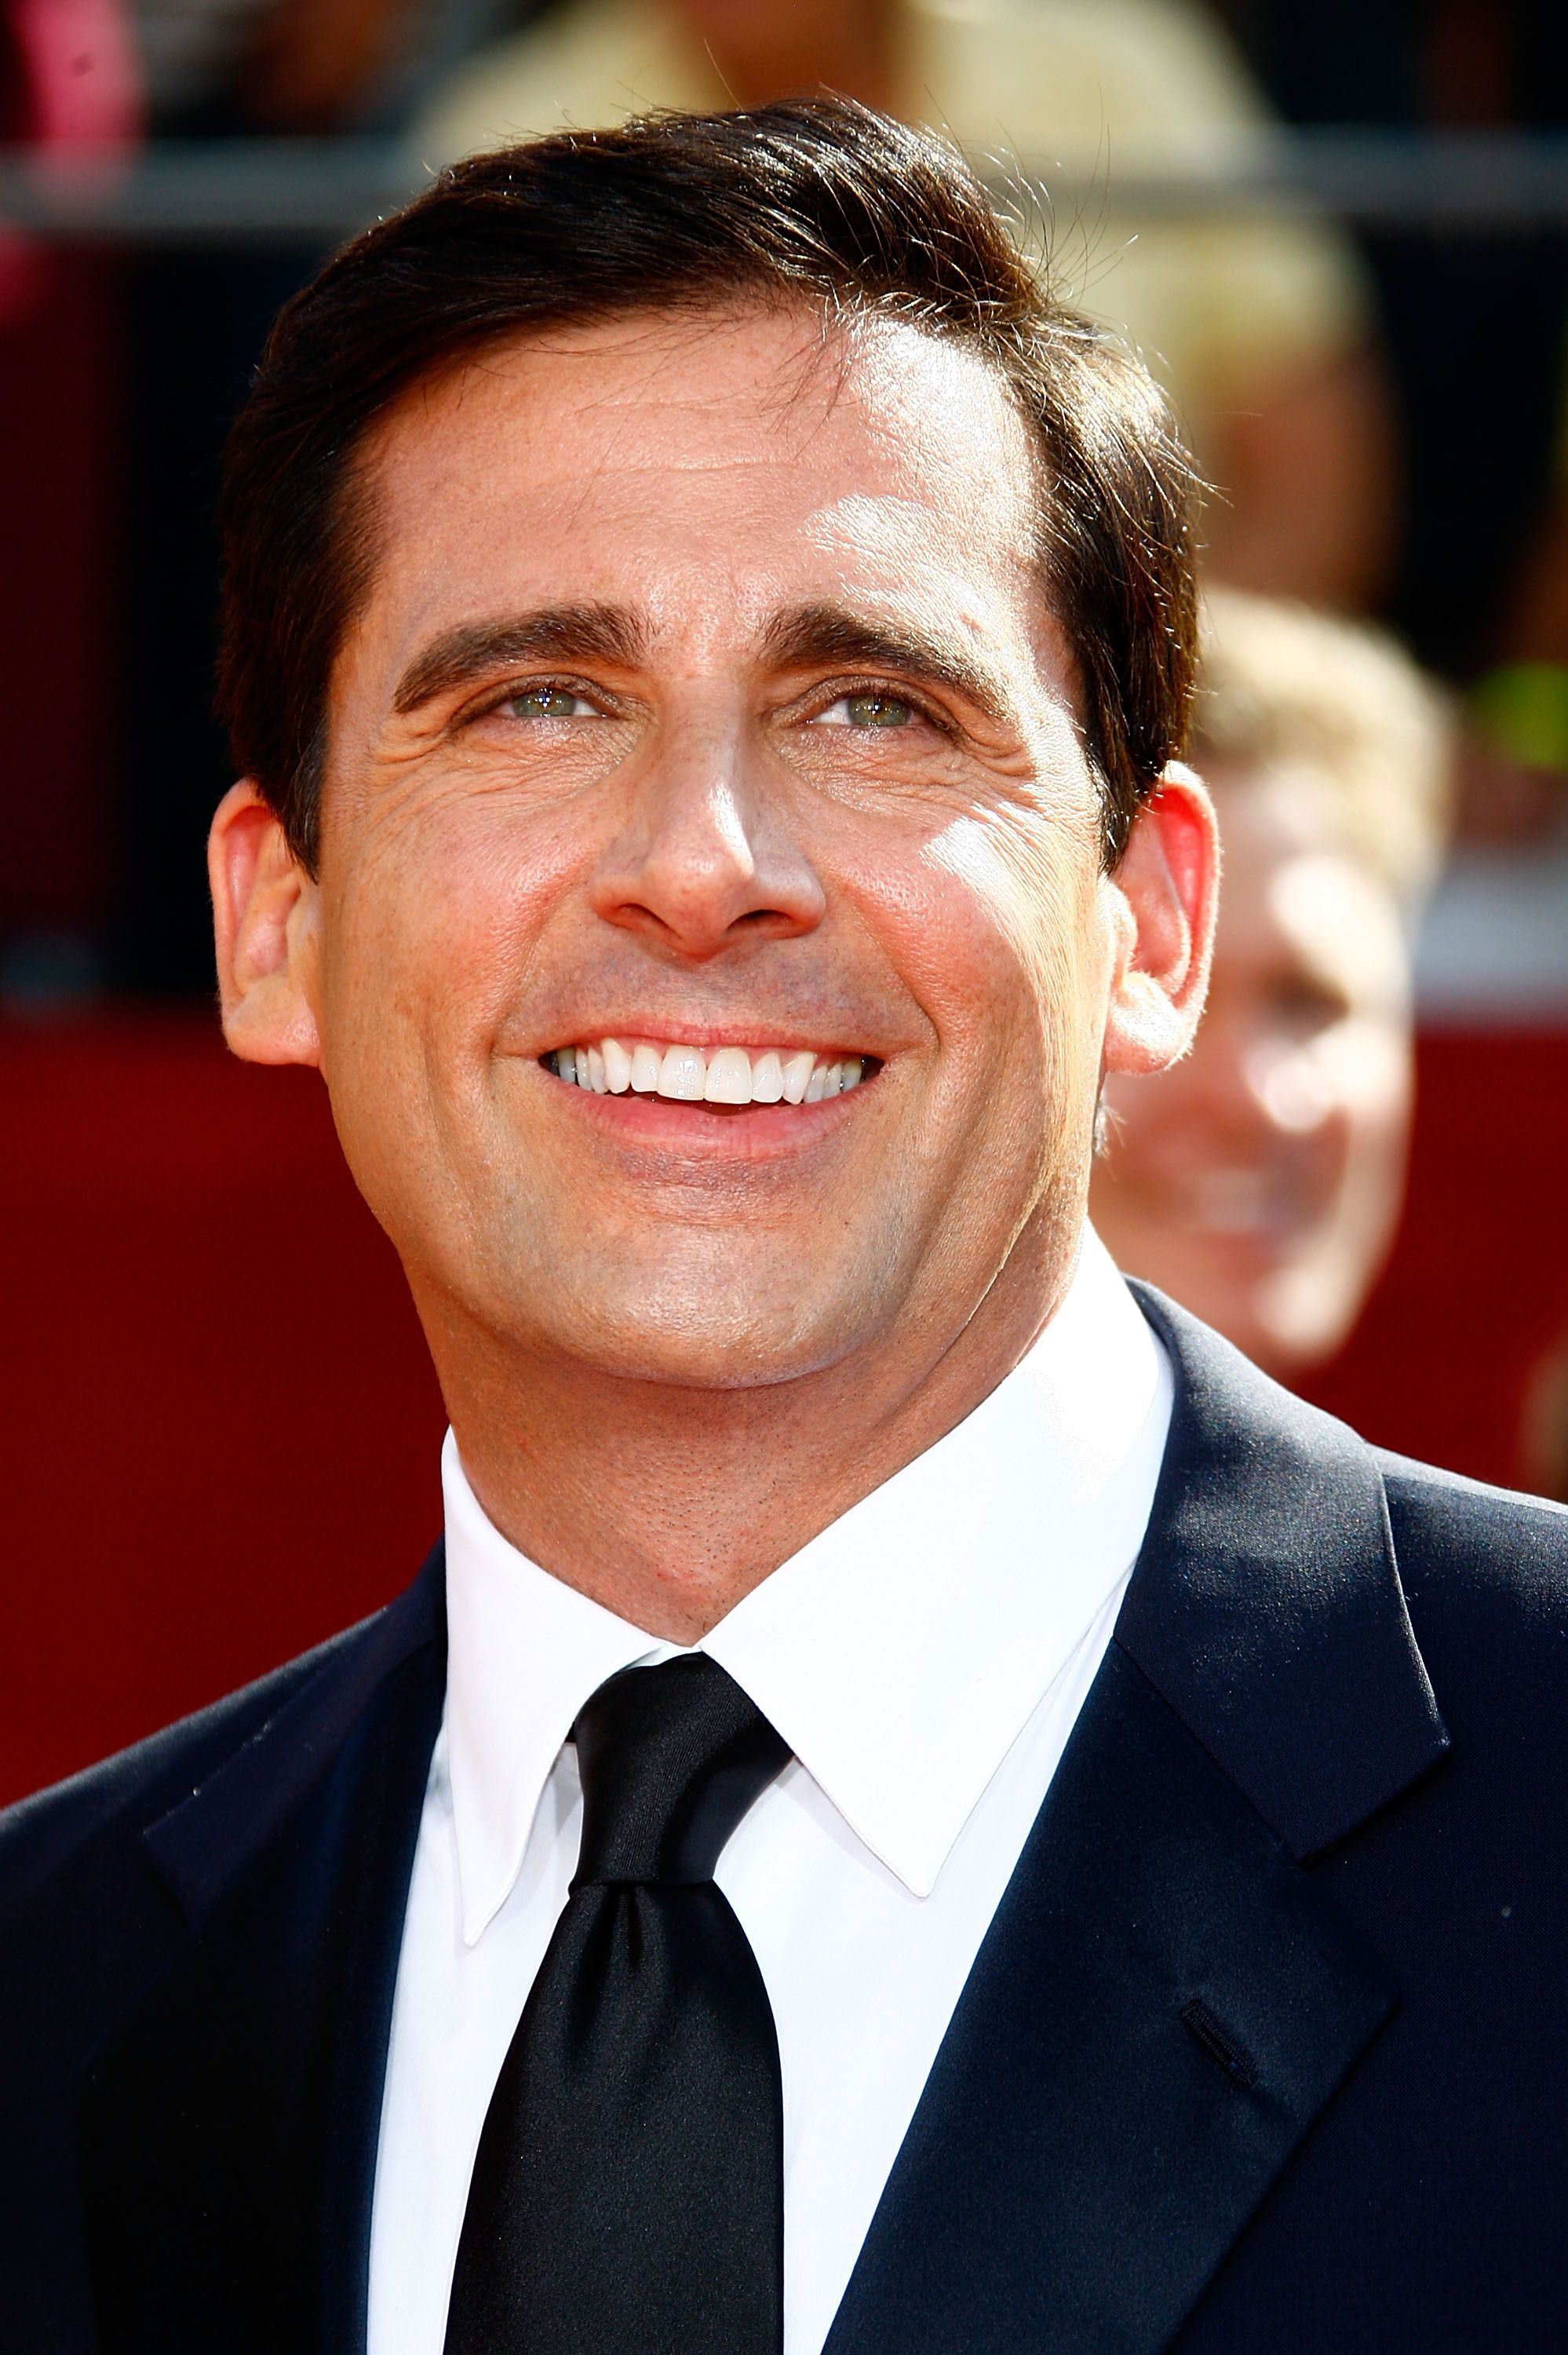 Steve Carell wallpapers, Celebrity, HQ Steve Carell pictures